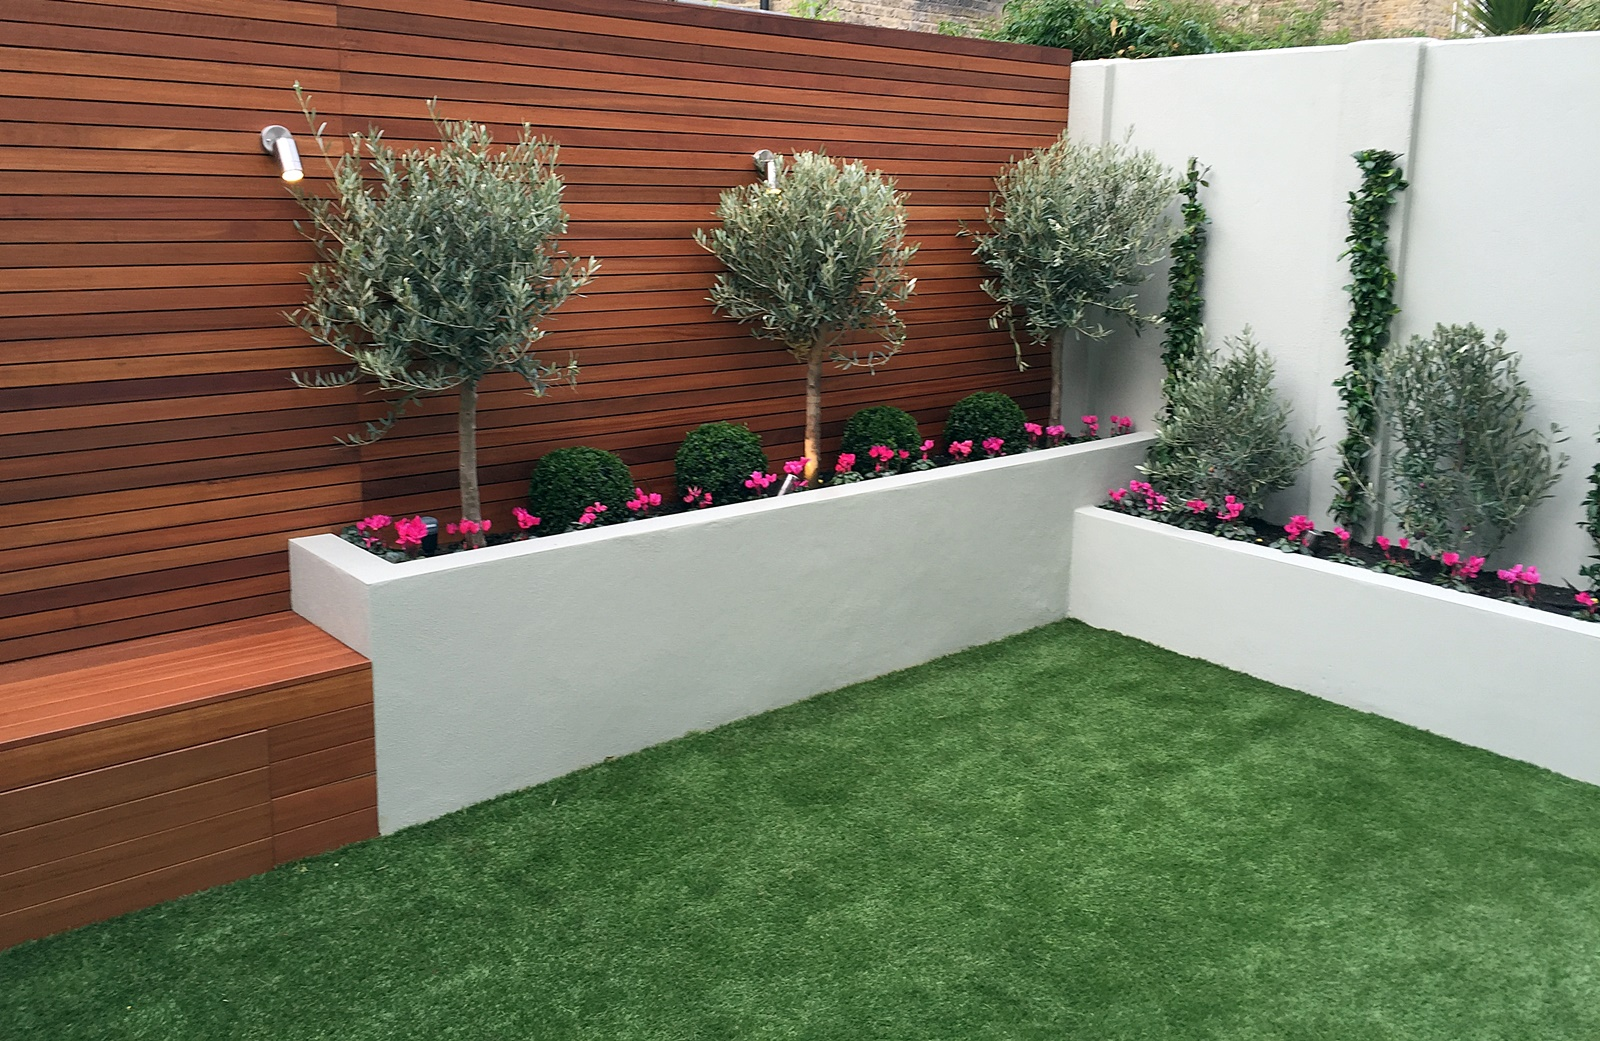 Designer london garden blog for Garden designs simple